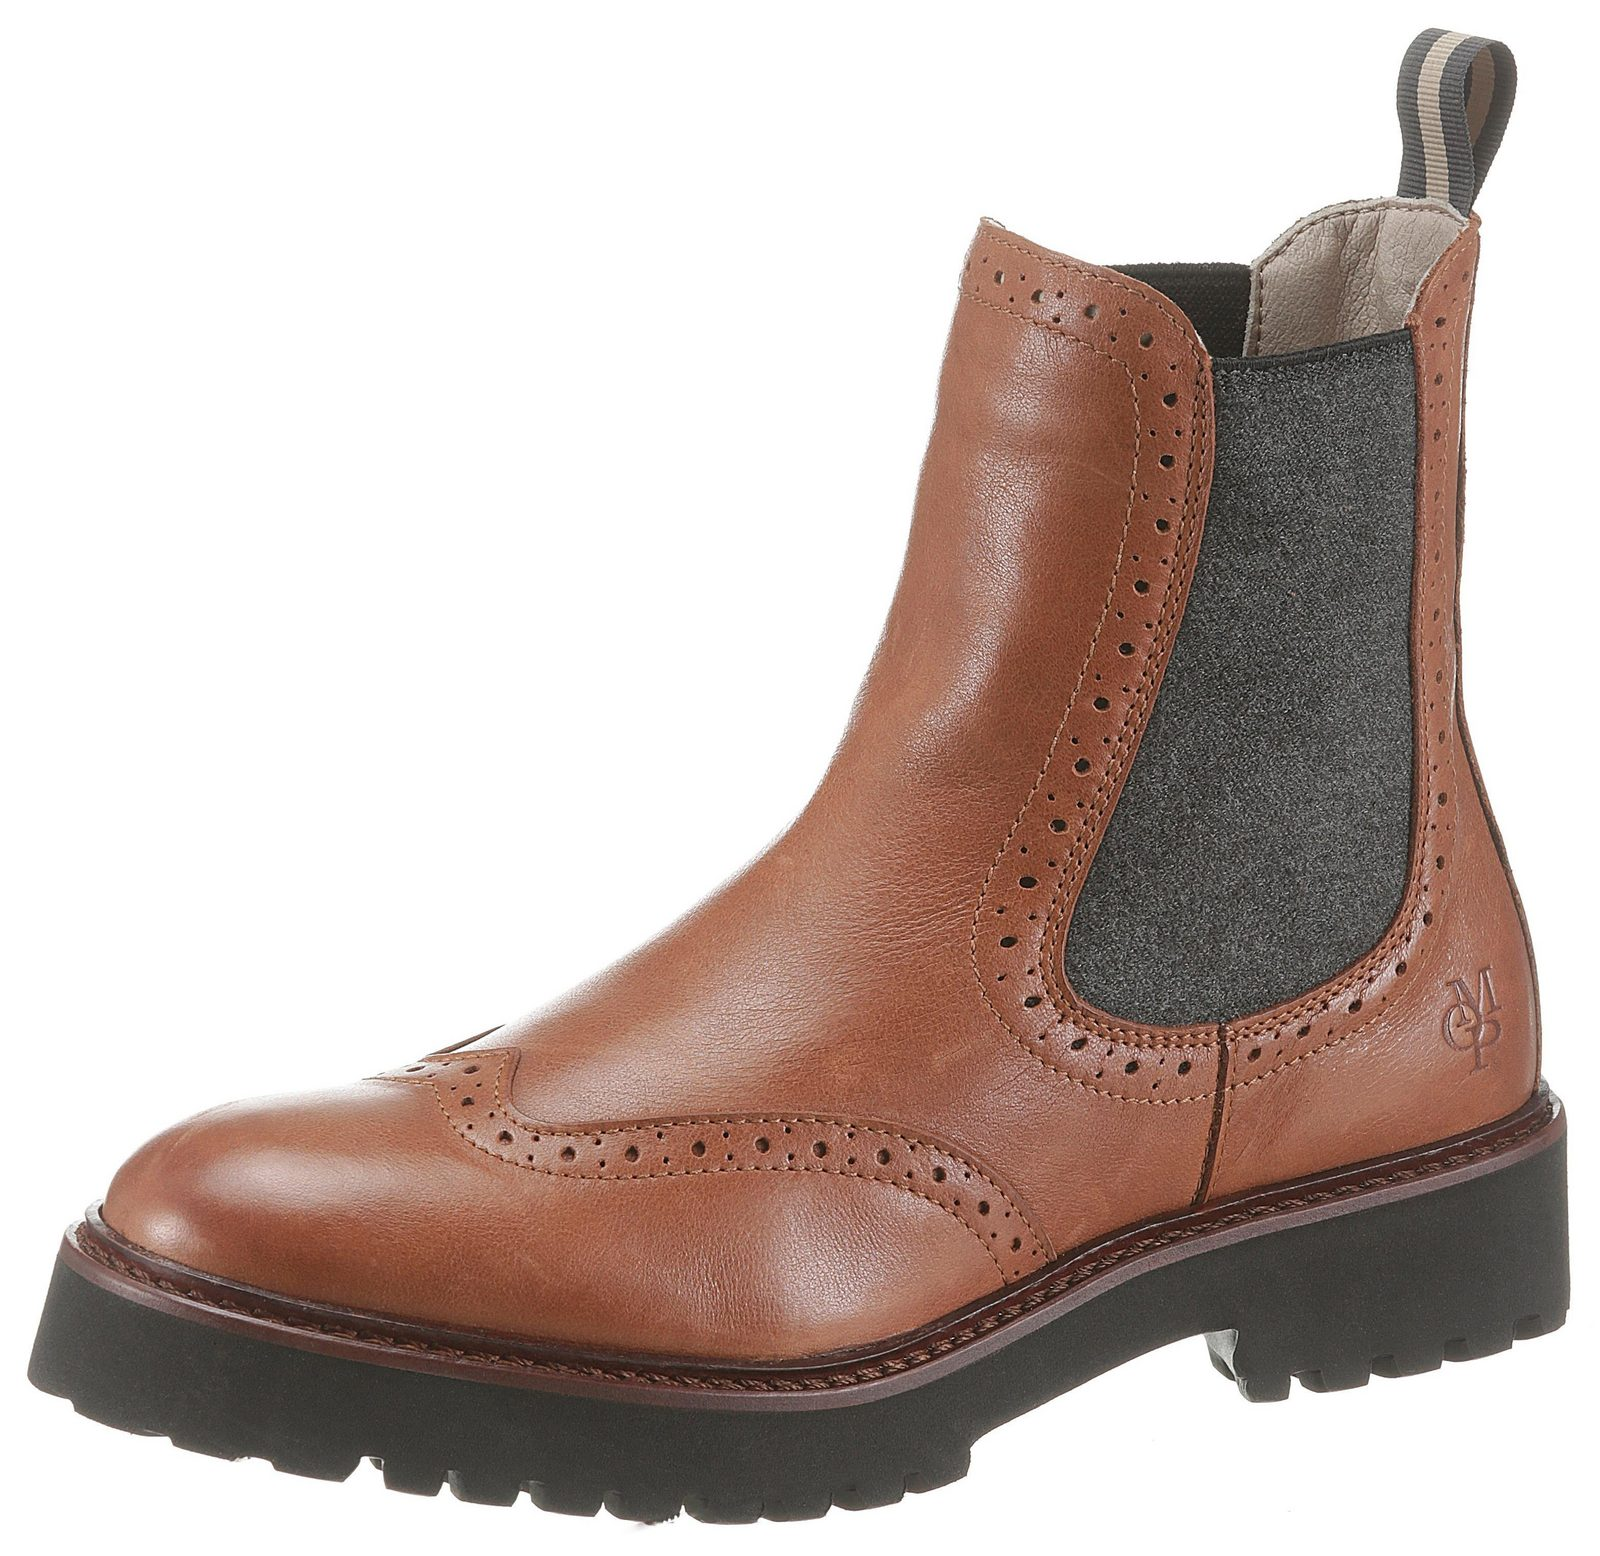 Marc O´Polo Chelseaboots mit stark profilierter Laufsohle